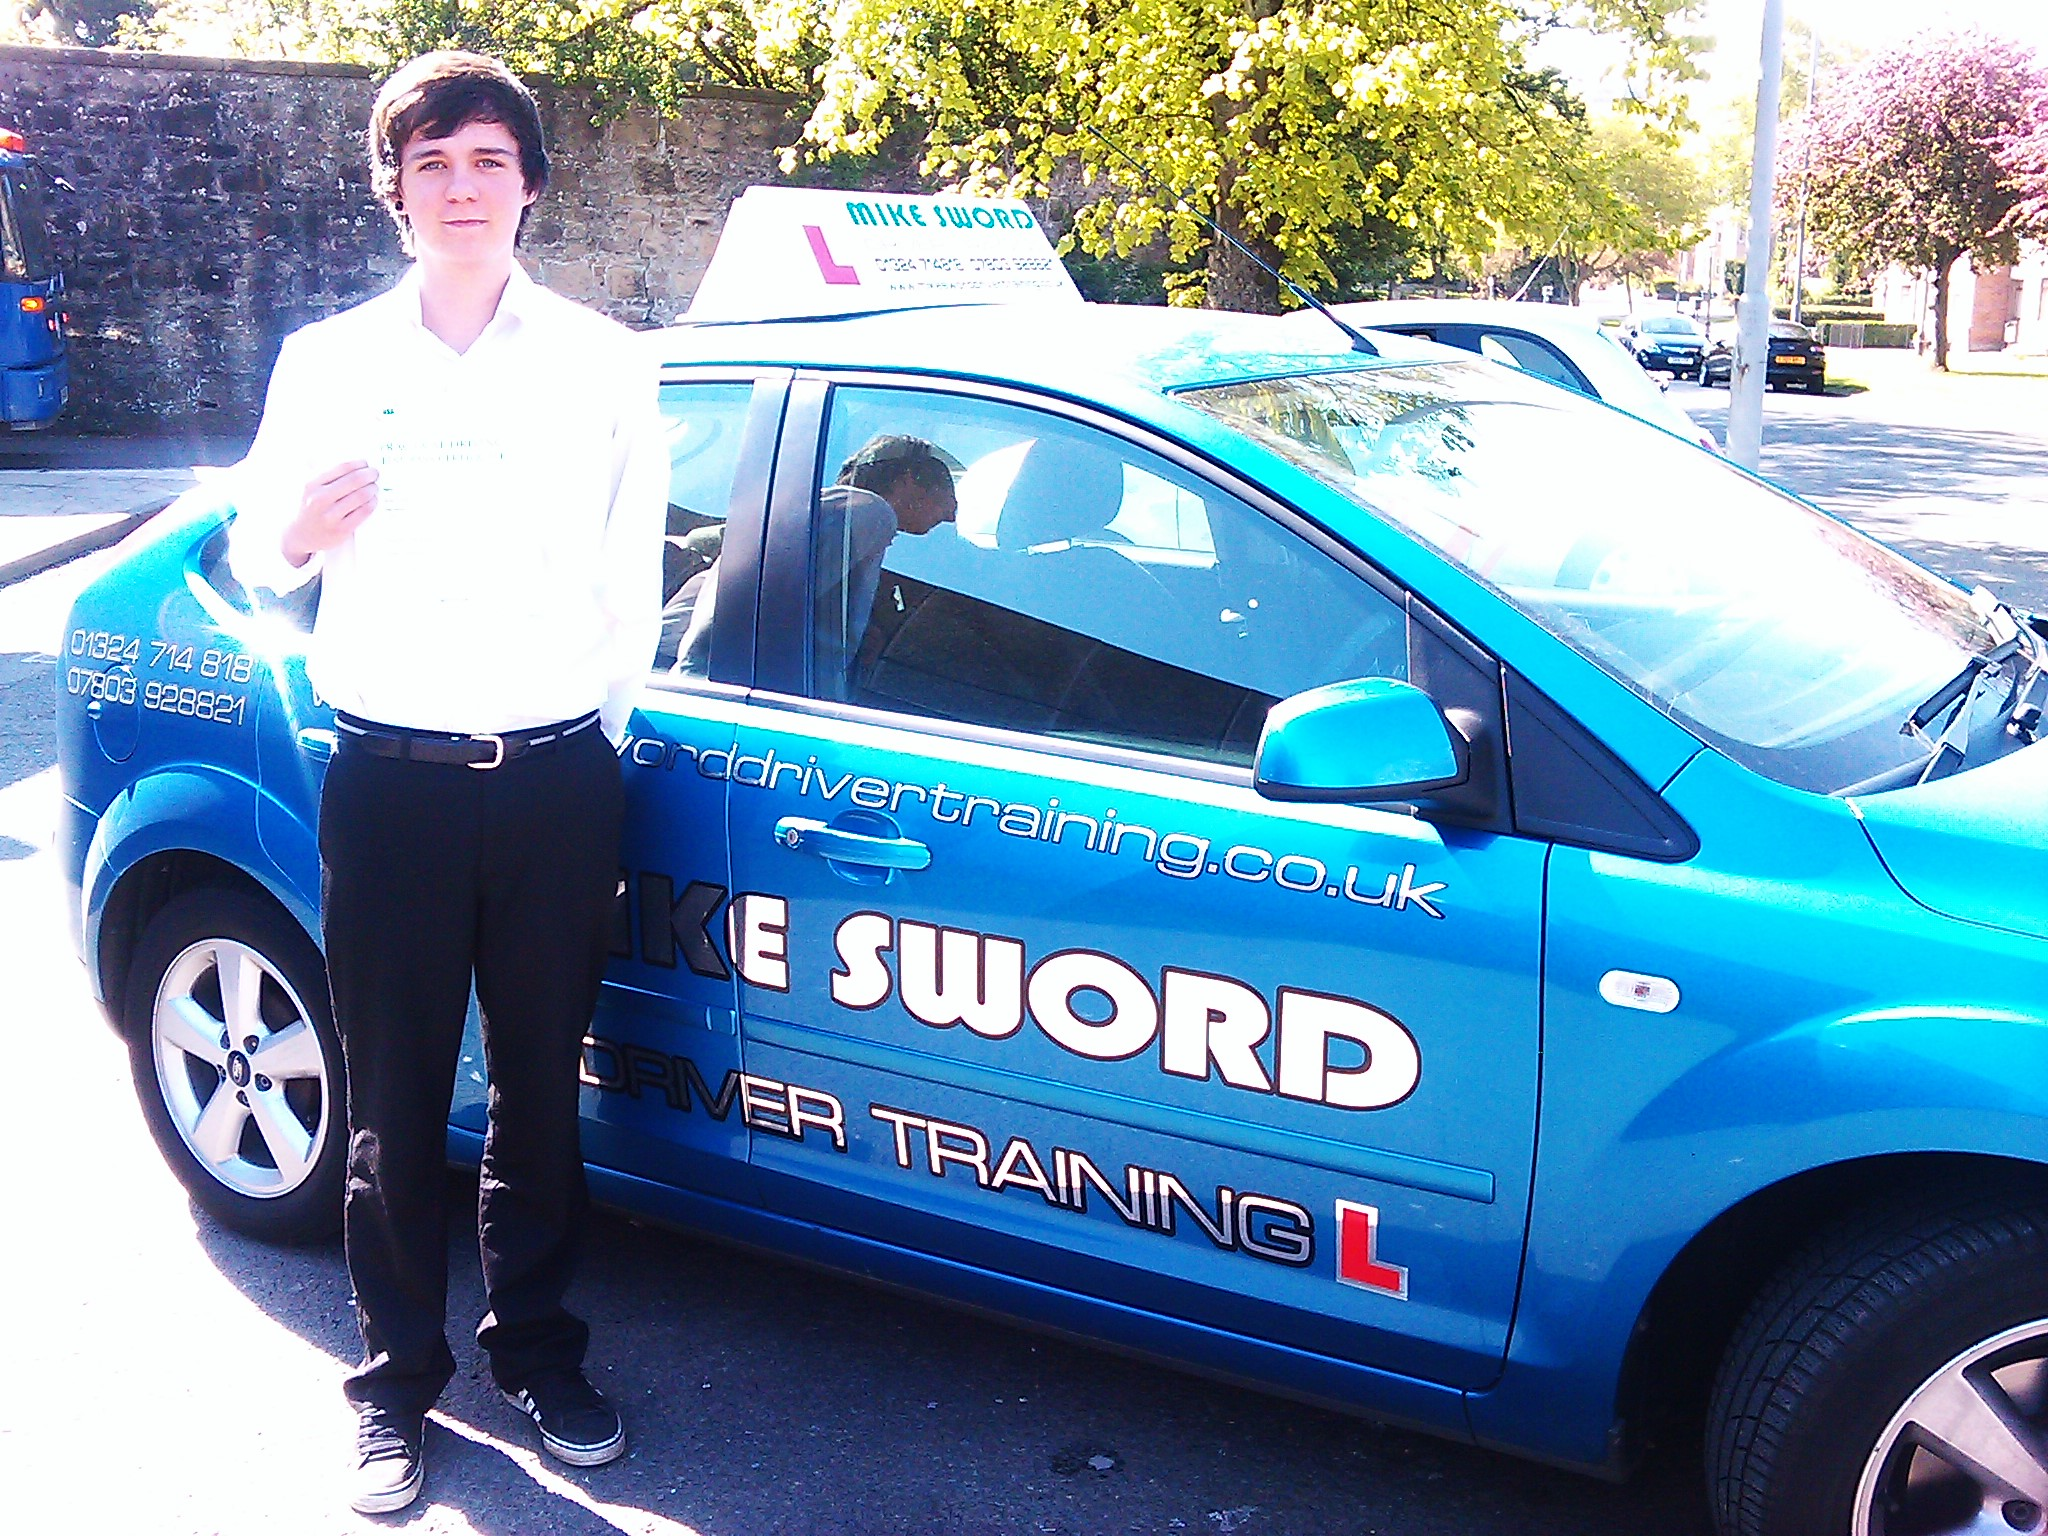 Tom Dallas passed with Mike Sword Driver Training